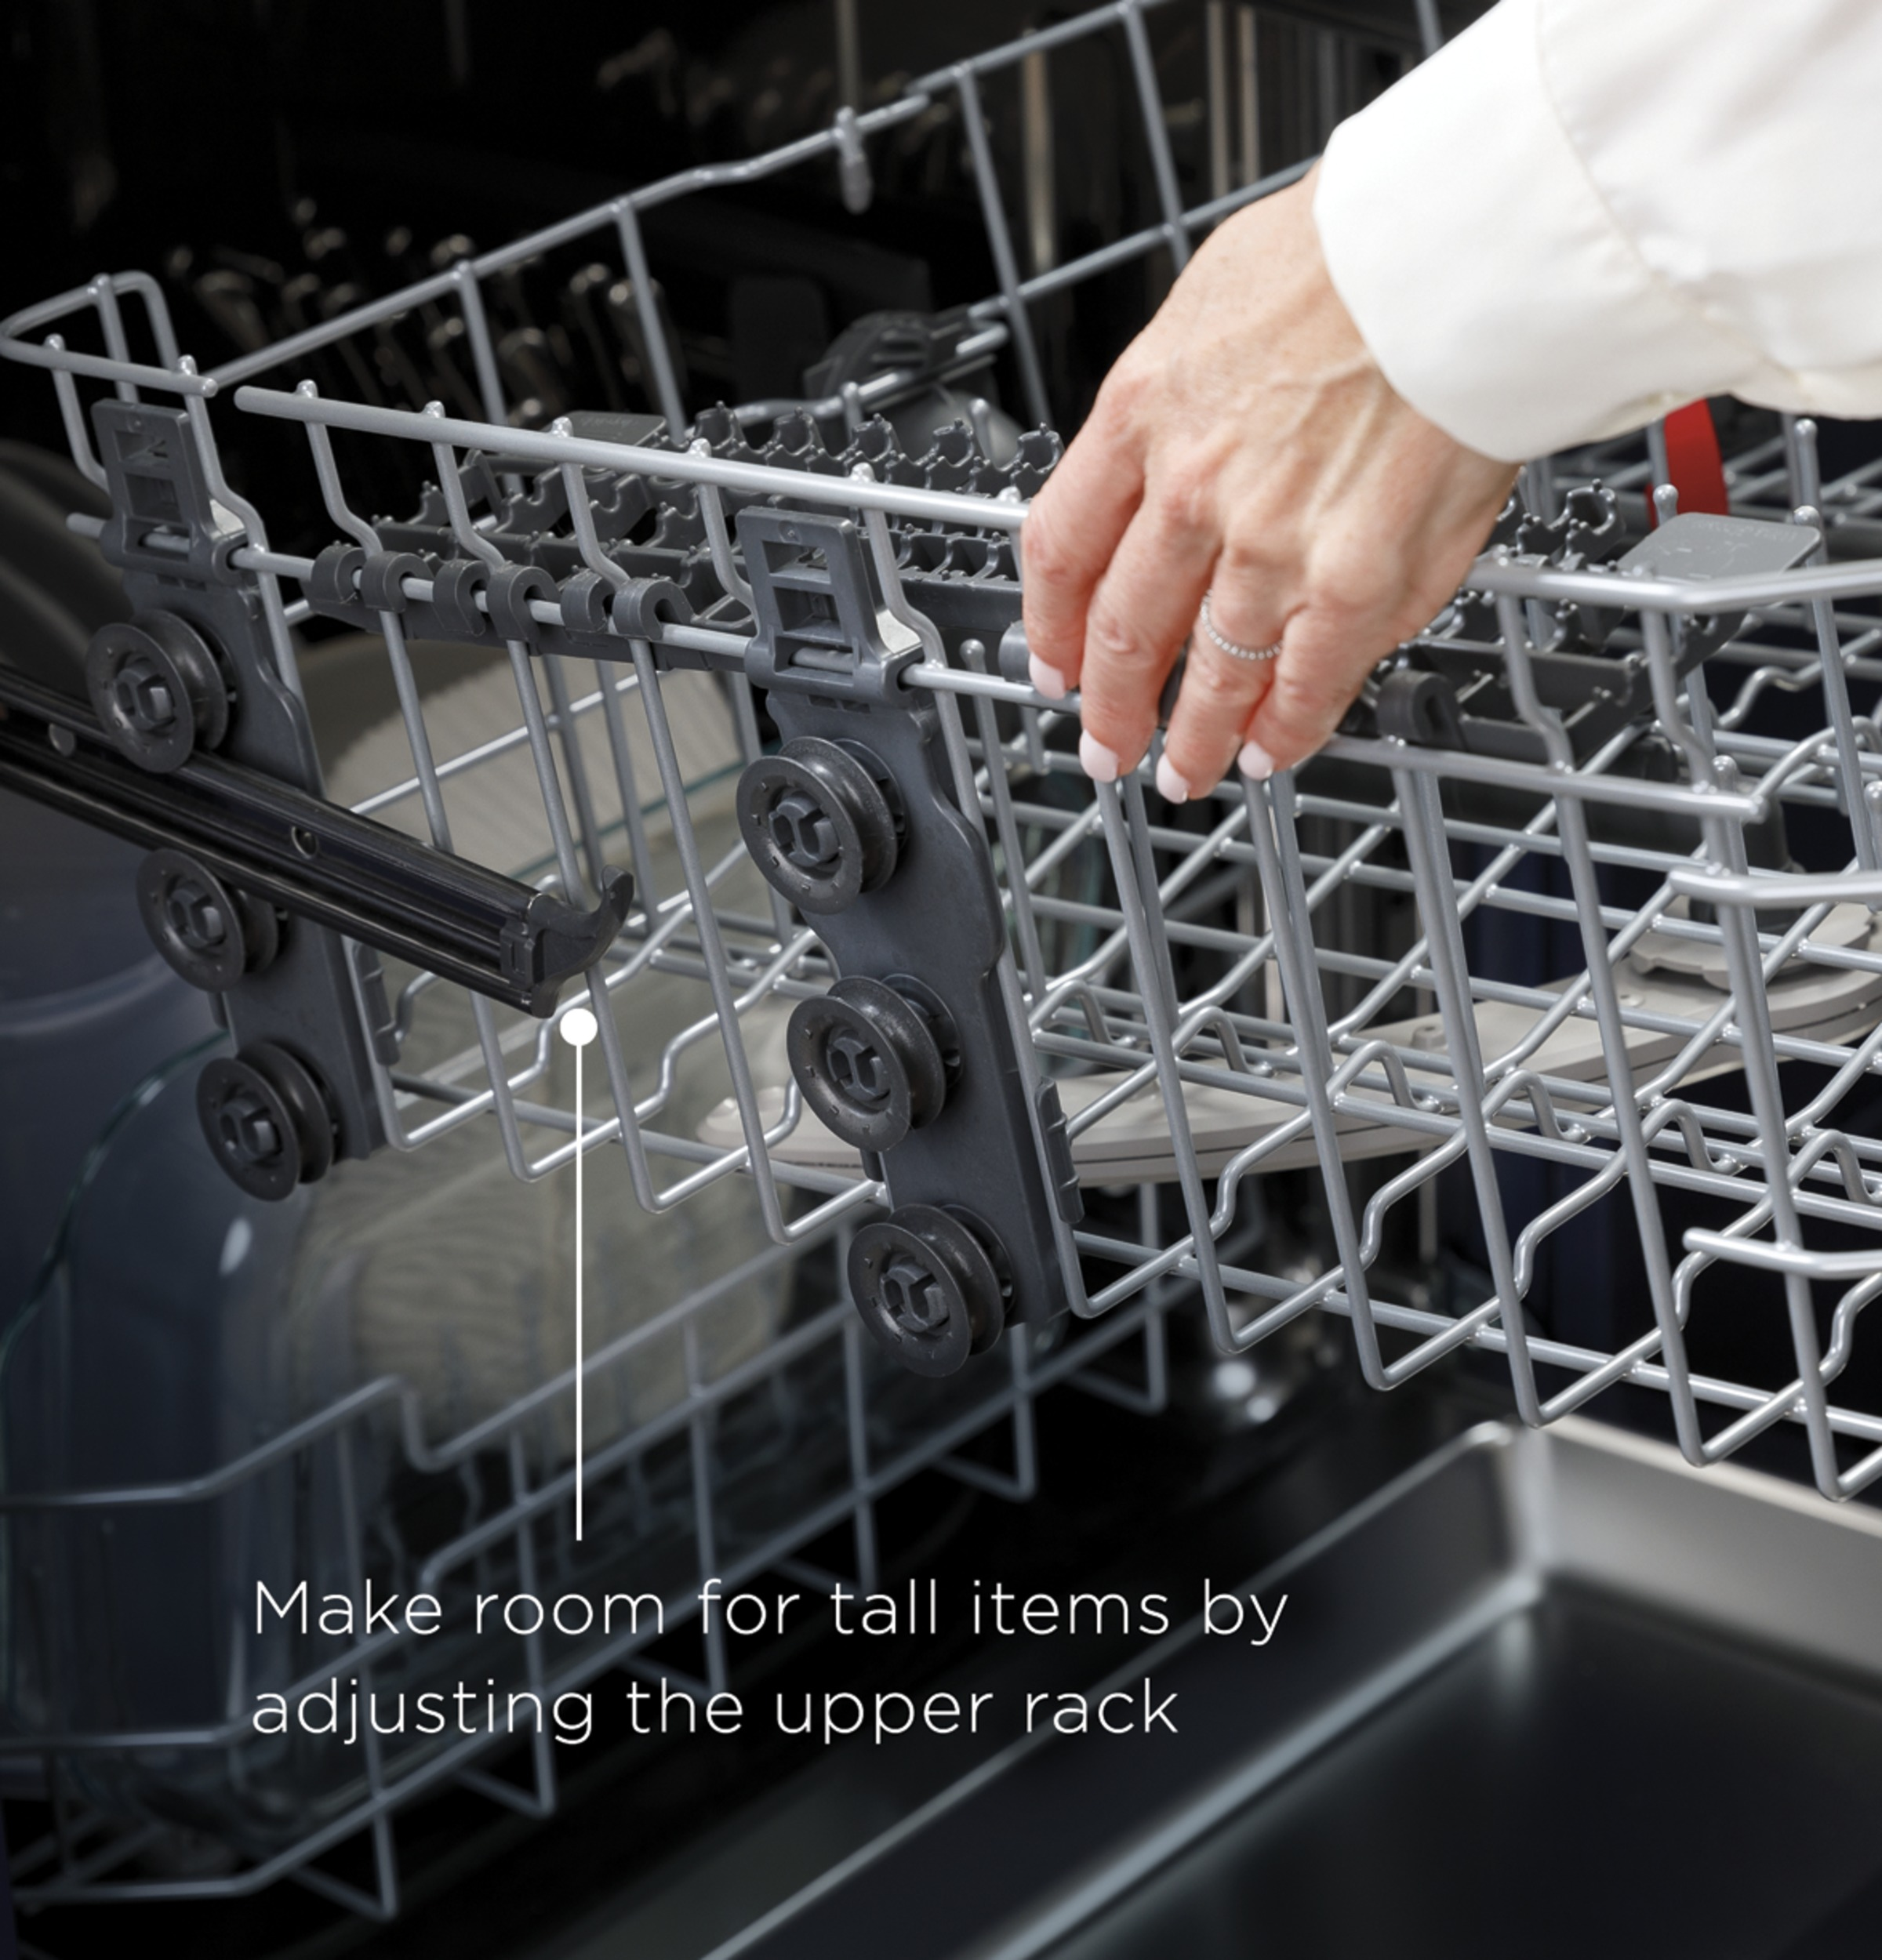 Model: GDT645SYNFS   GE GE® Fingerprint Resistant Top Control with Stainless Steel Interior Dishwasher with Sanitize Cycle & Dry Boost with Fan Assist